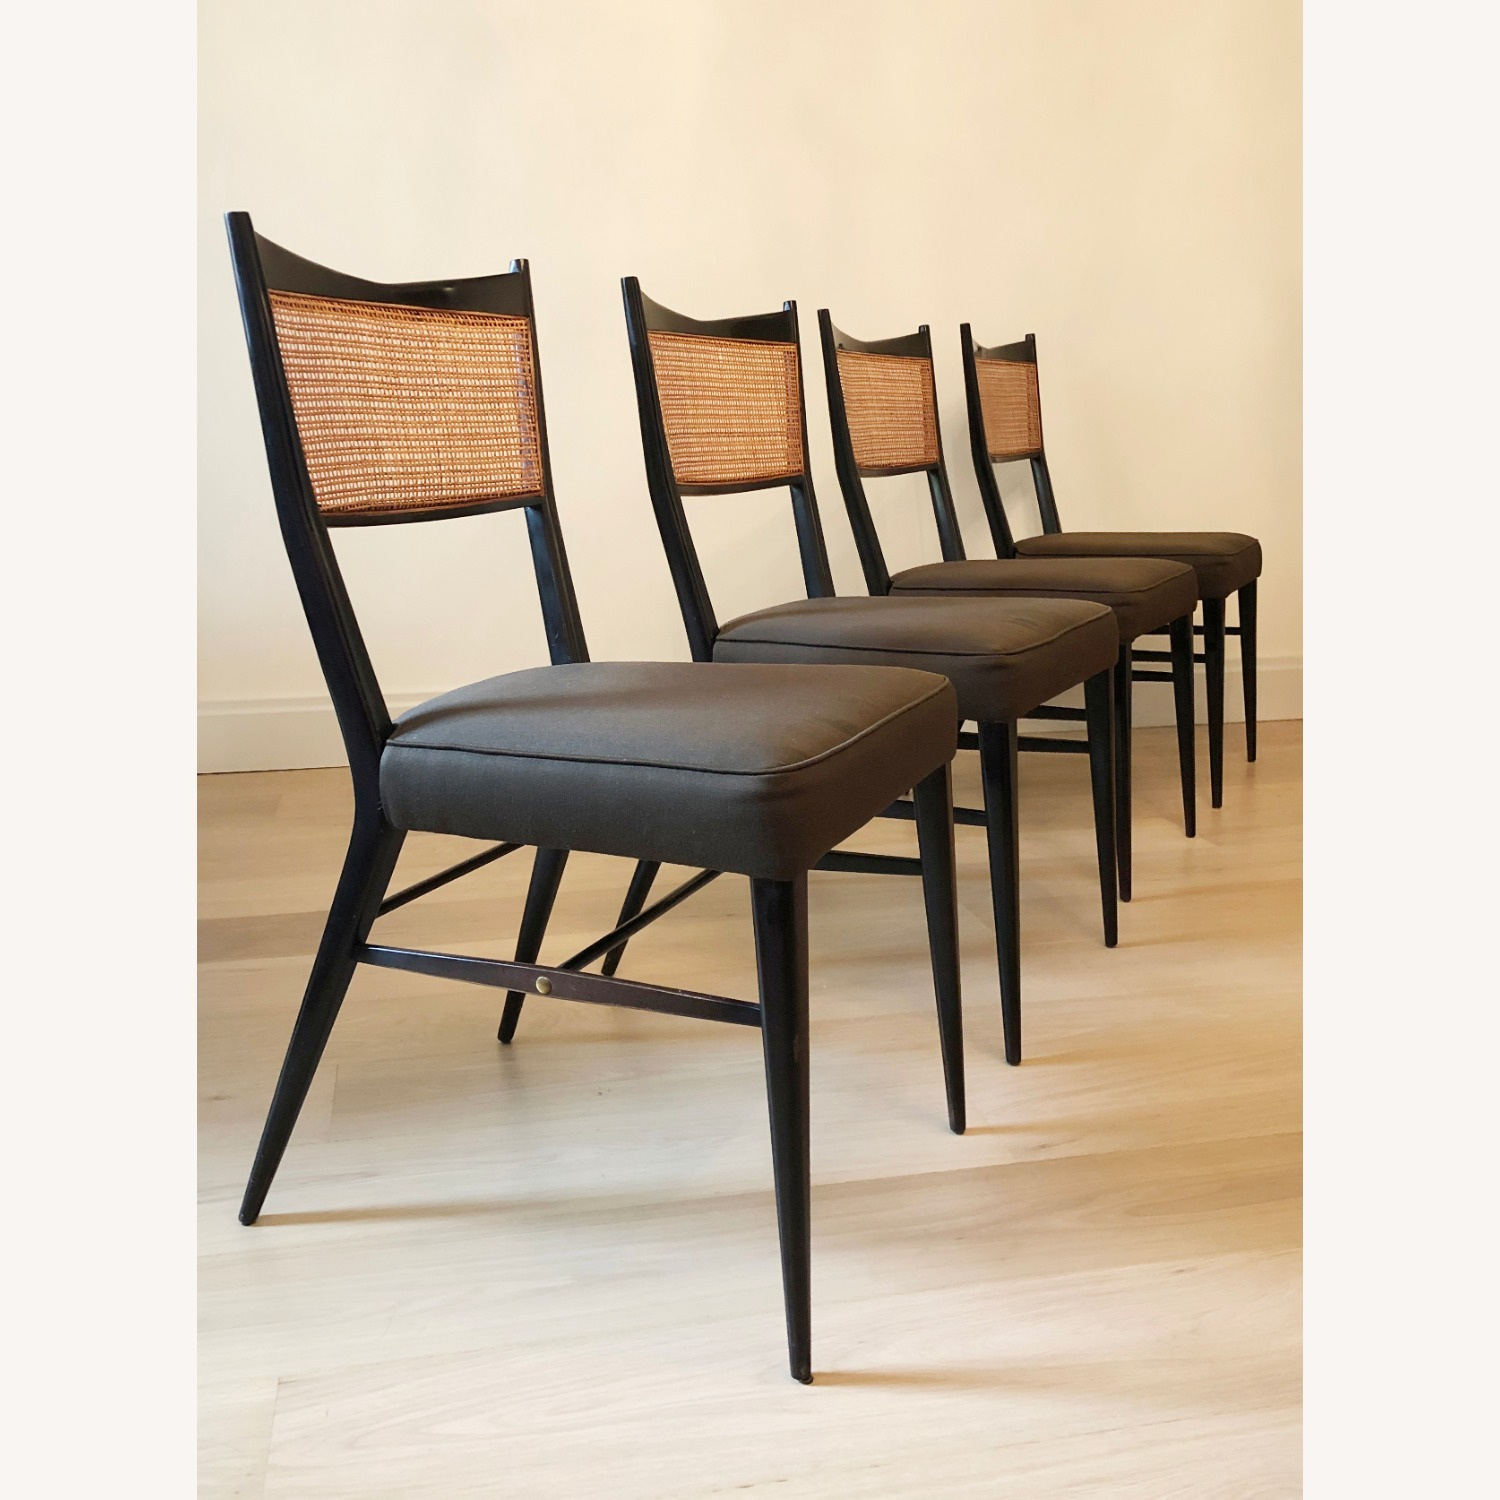 Paul McCobb Irwin Collection 4 Dining Chairs - image-1